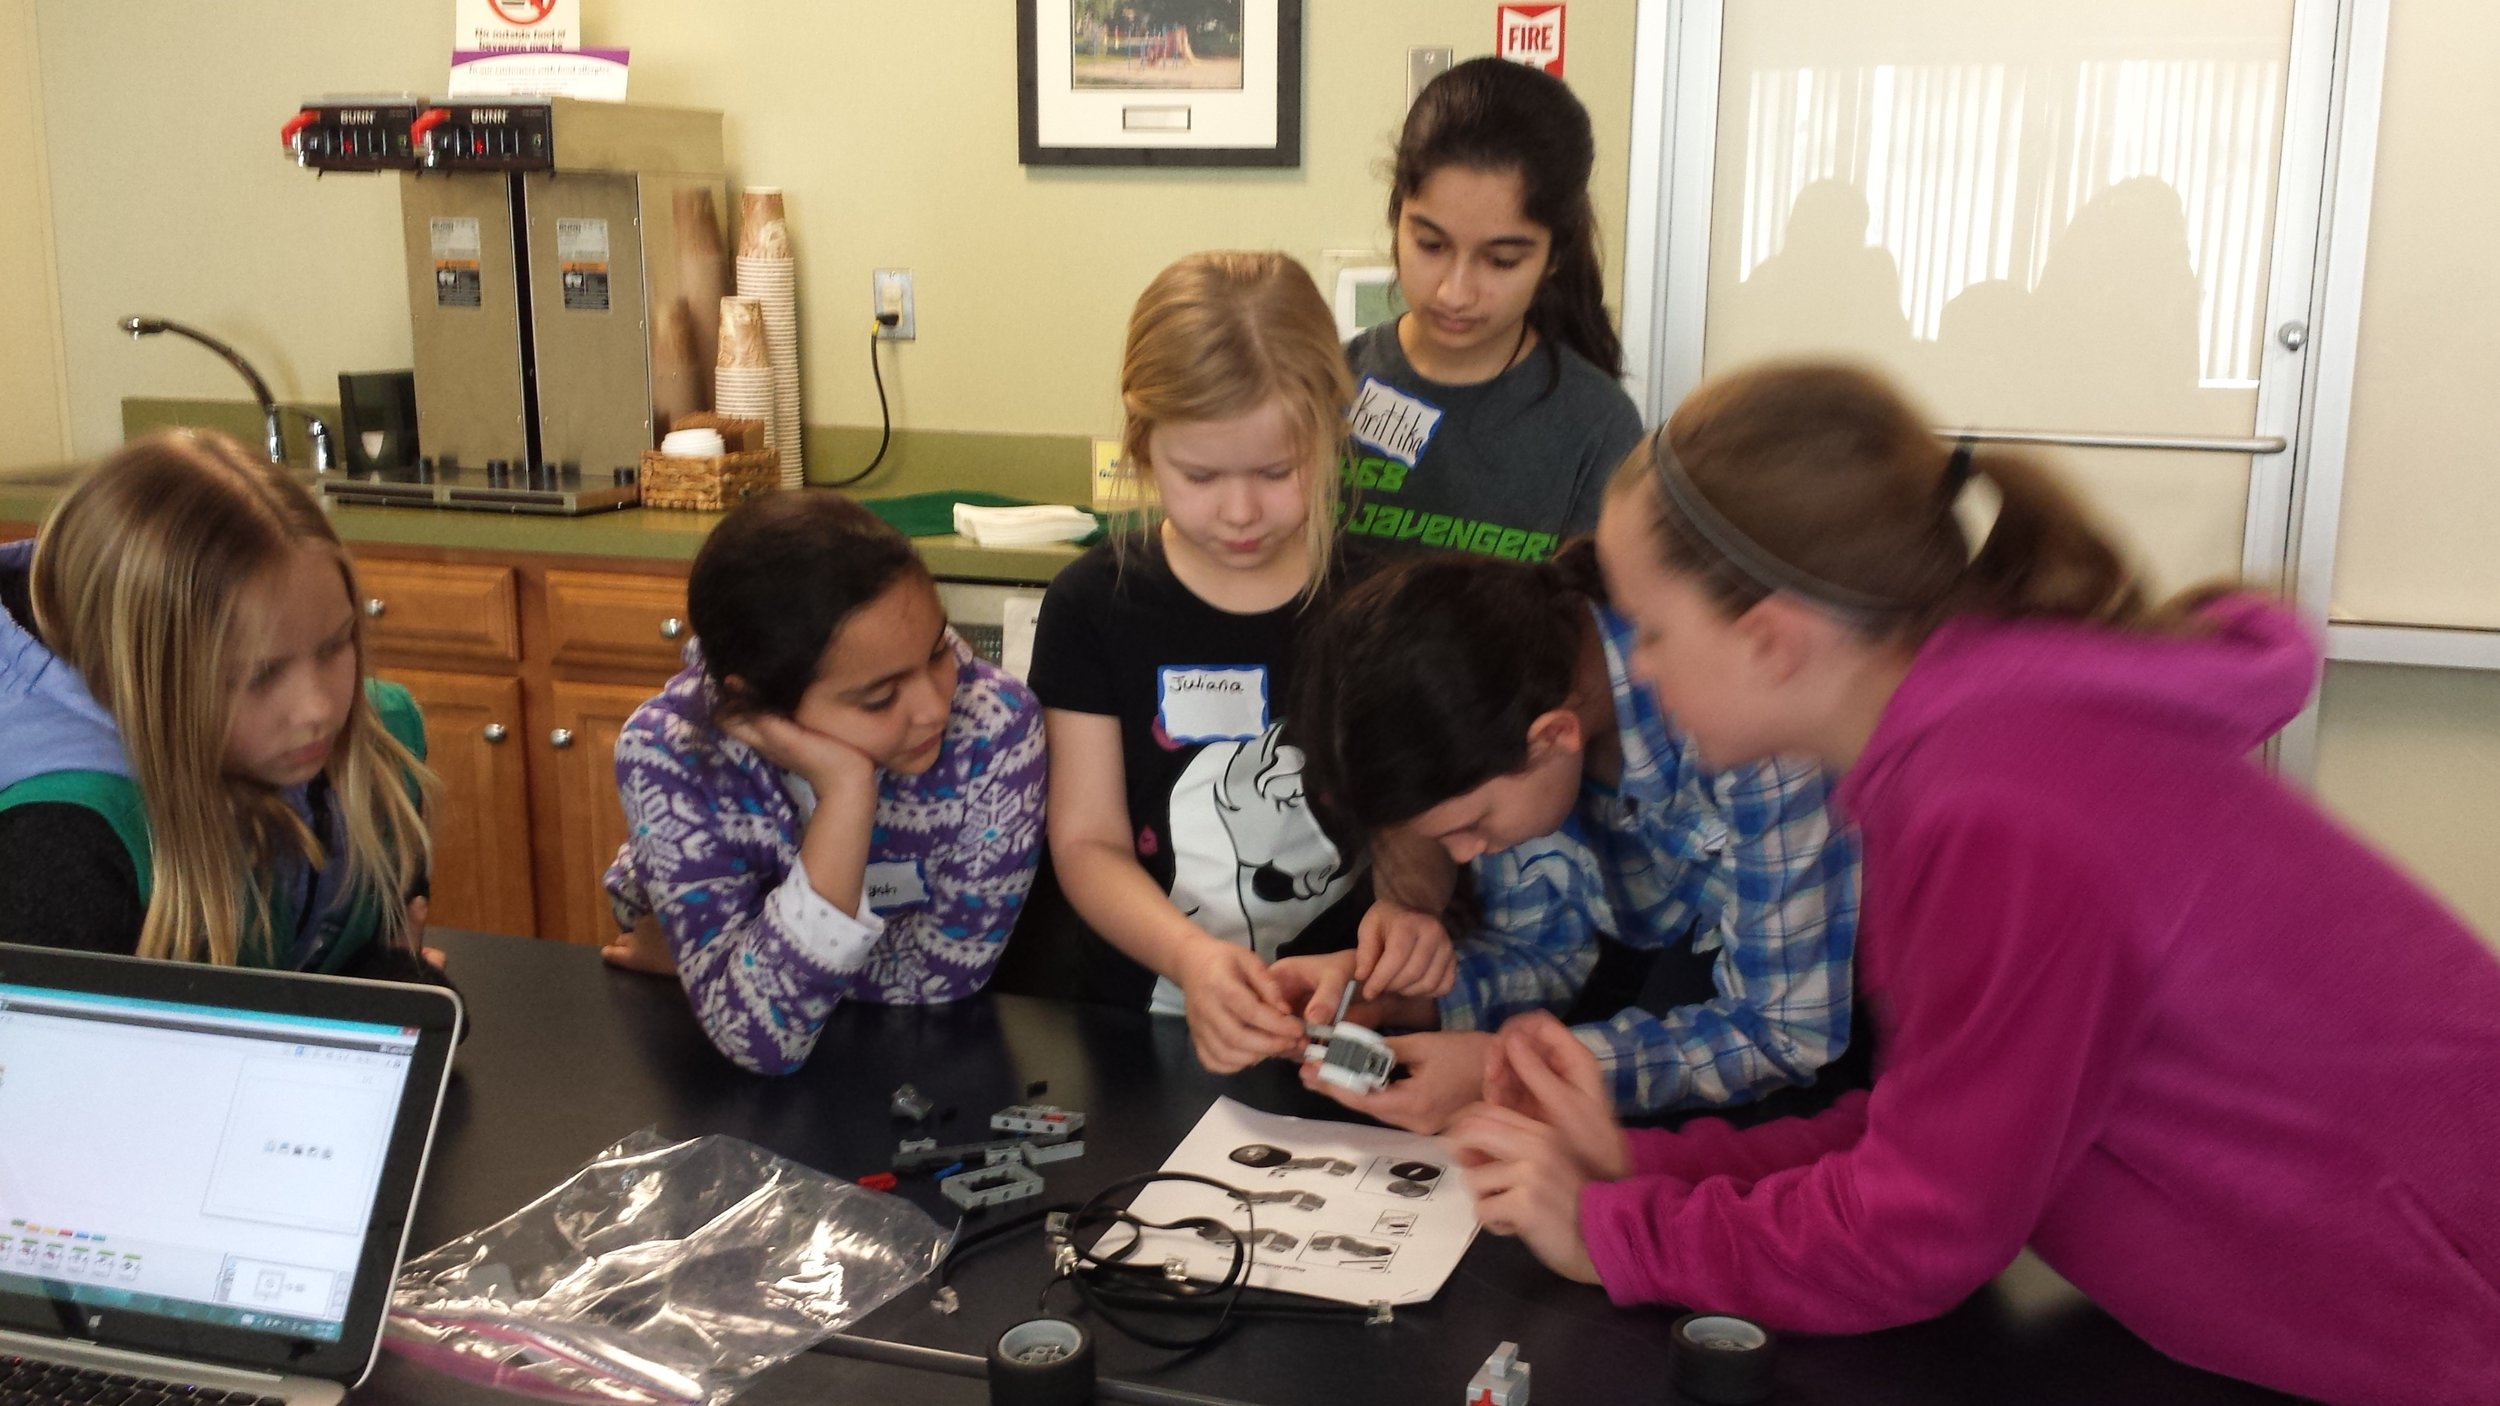 Krittika helps the participants build their robot. Girls Robotics Camp, March 2017.